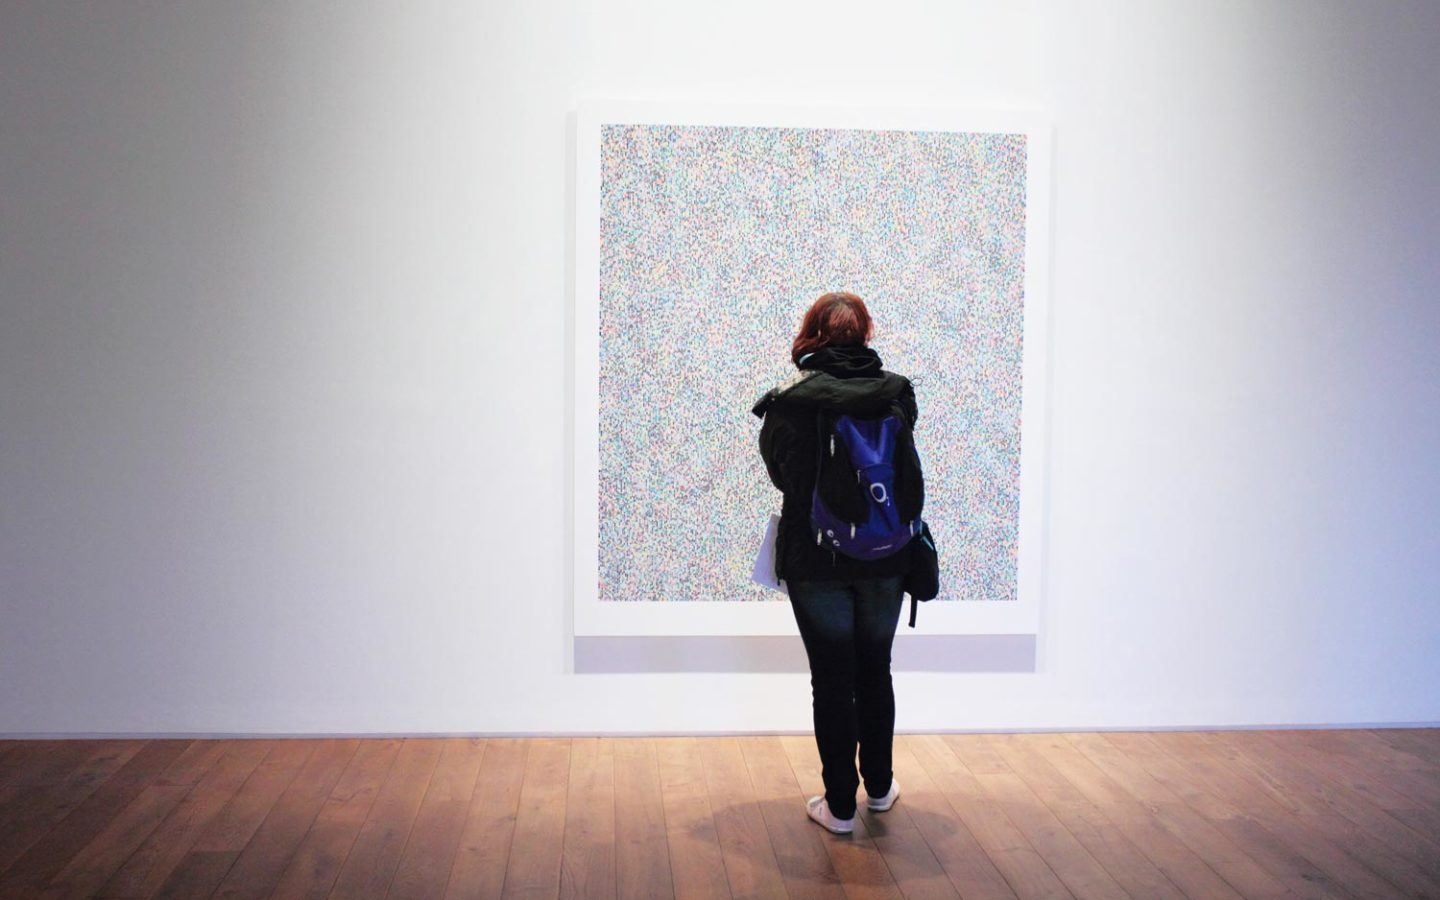 person in black jacket standing in front of art in museum